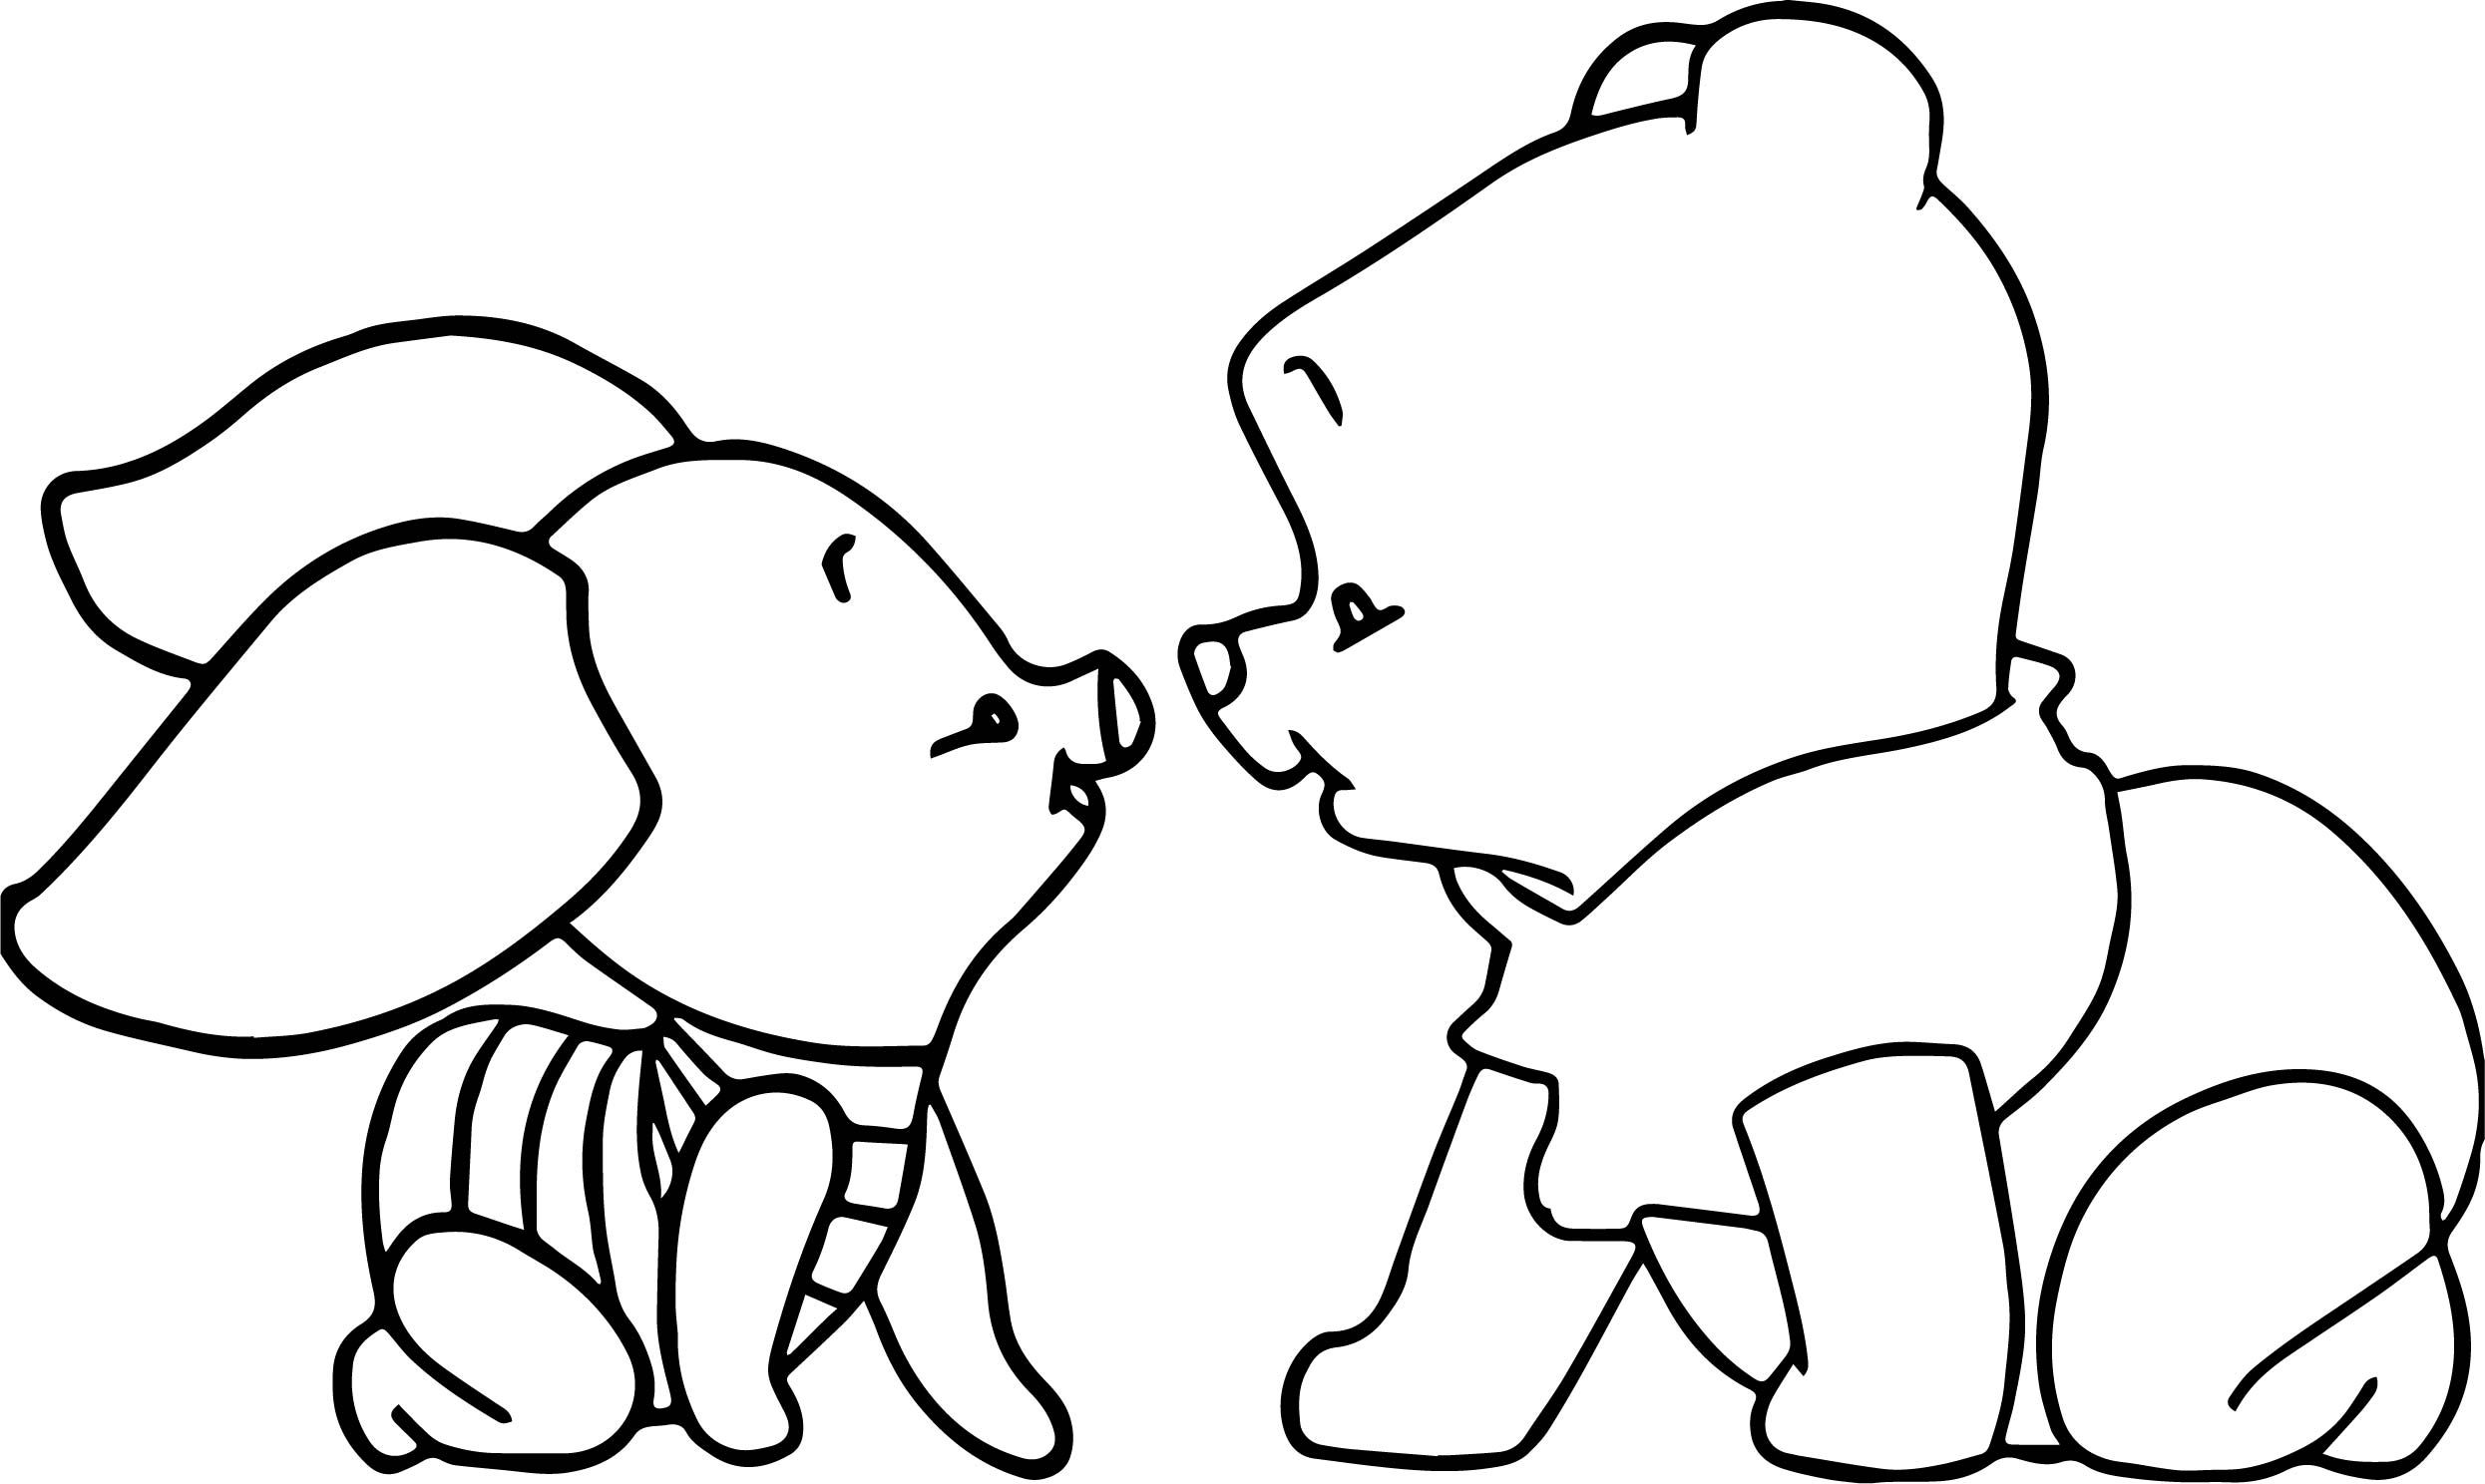 Awesome Baby Piglet Winnie The Pooh Crawling Coloring Page Winnie The Pooh Drawing Whinnie The Pooh Drawings Cute Winnie The Pooh